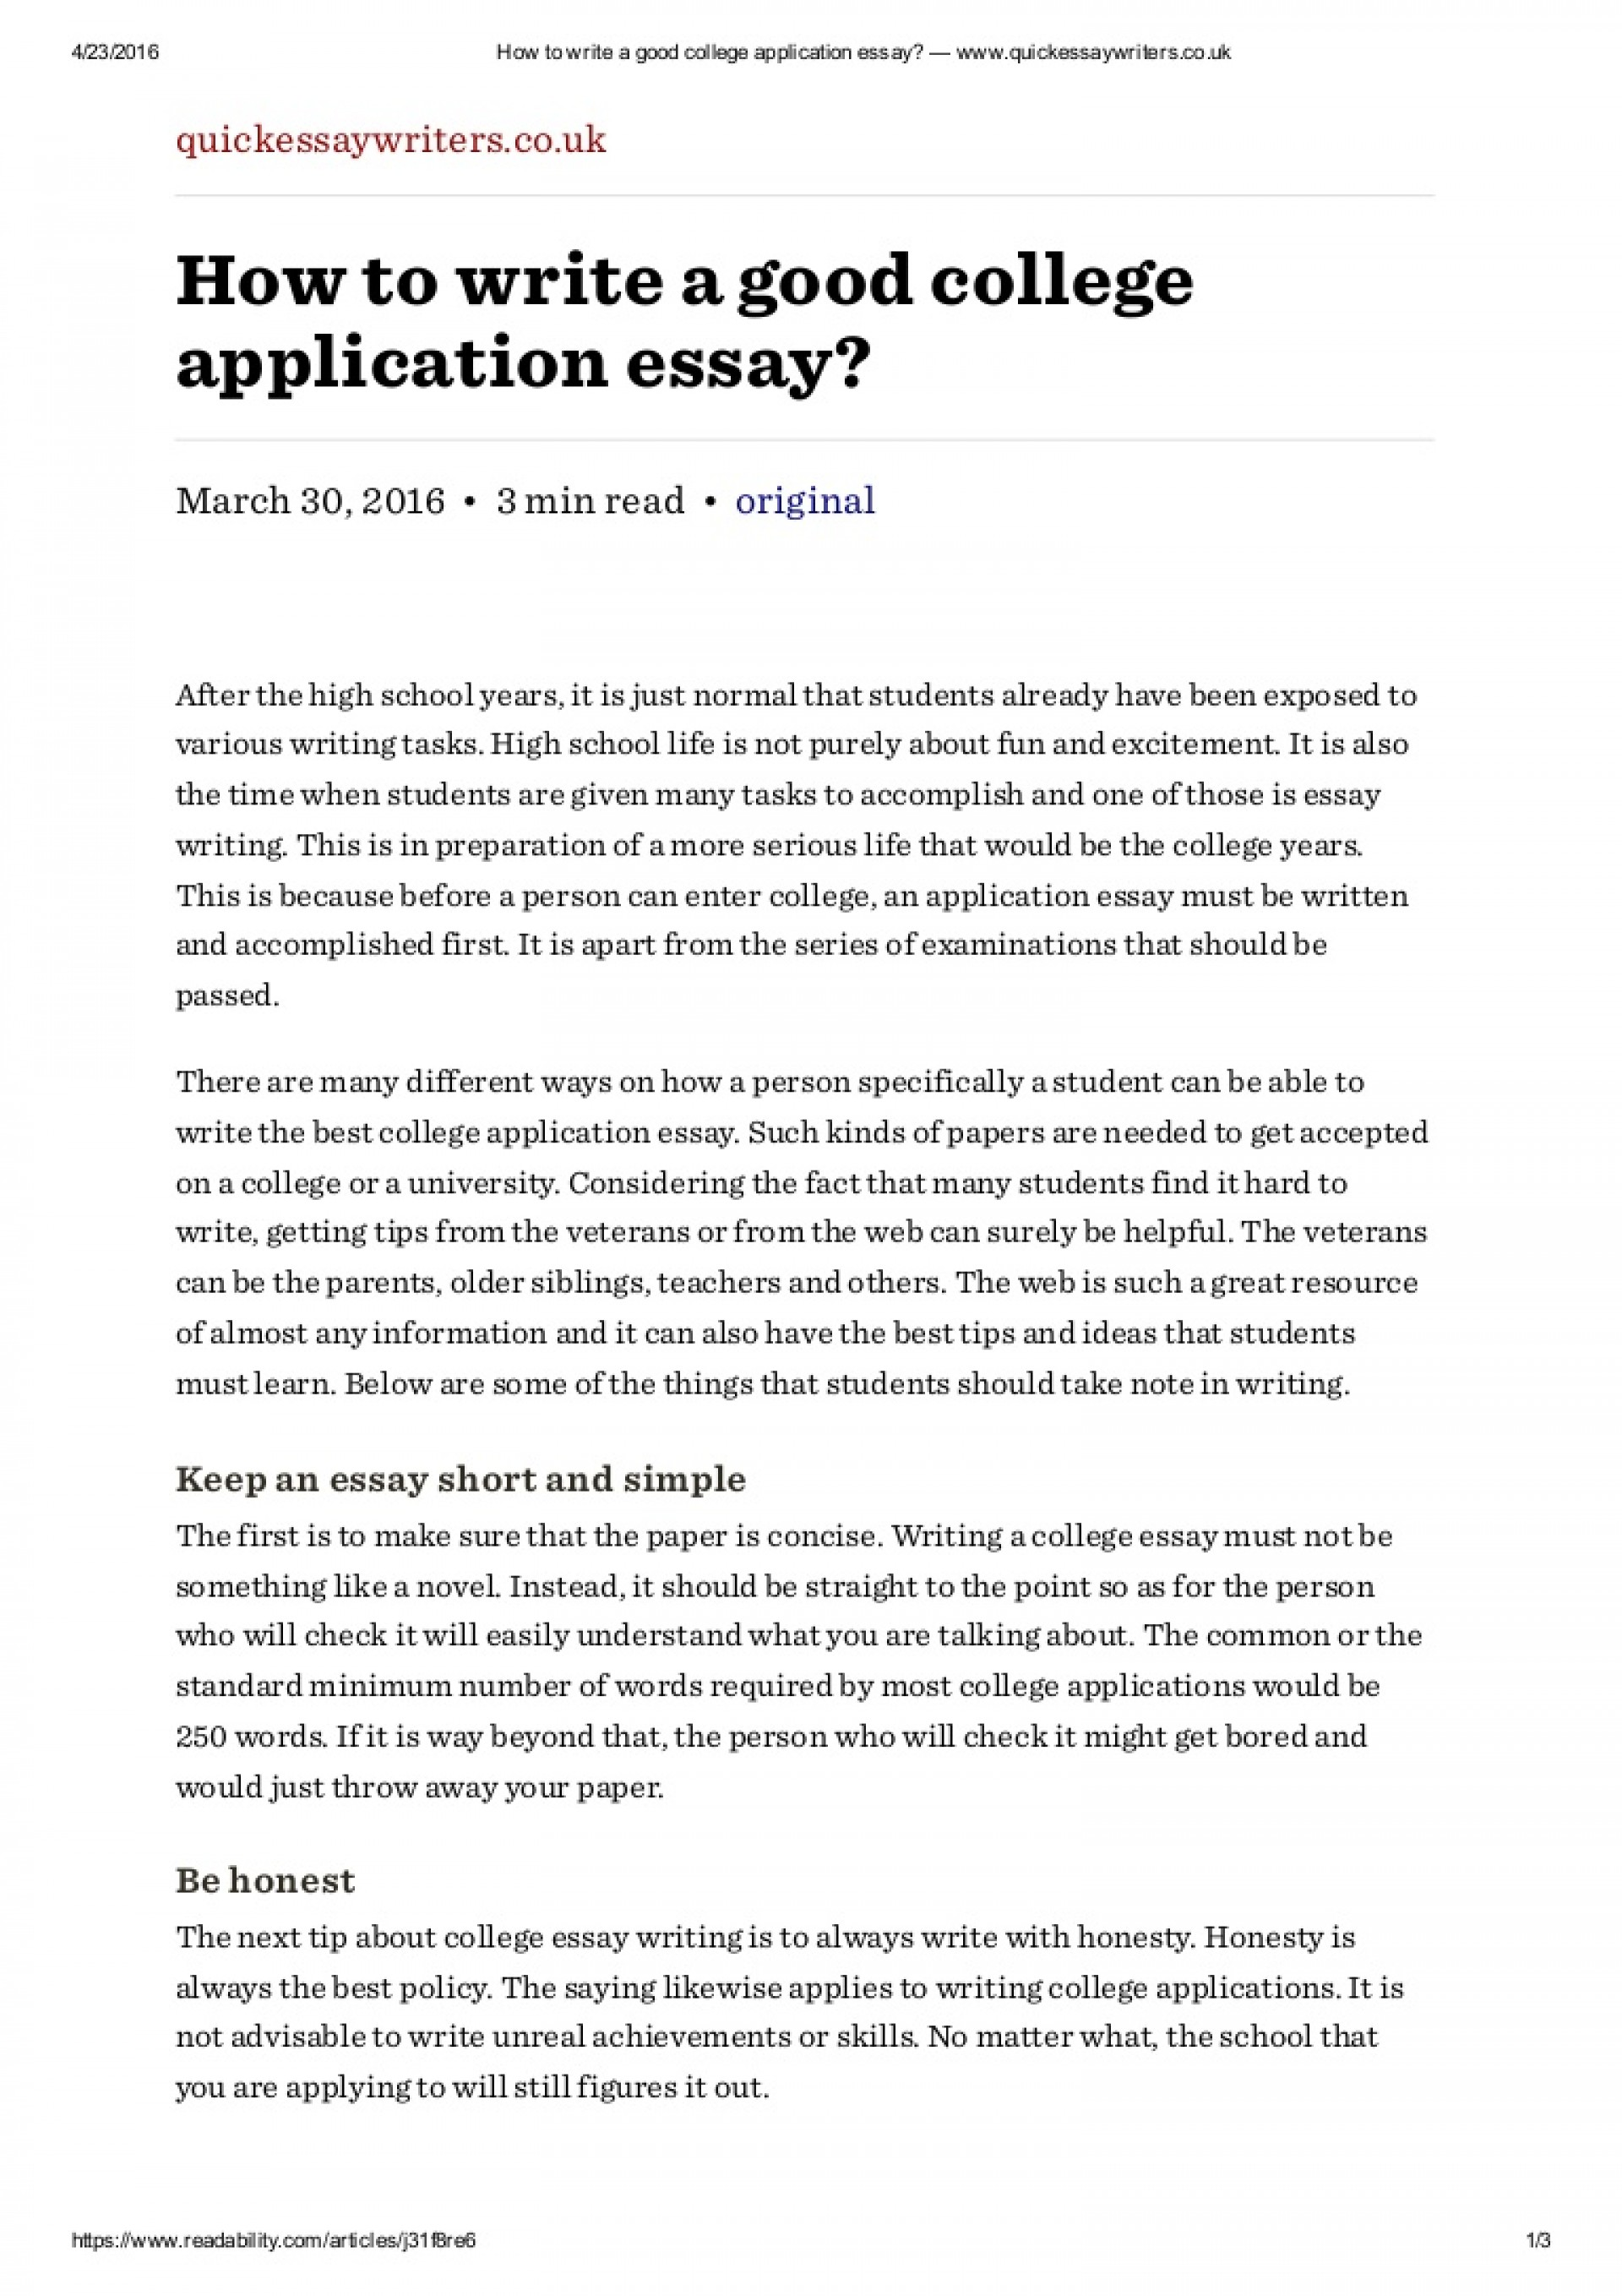 009 Howtowriteagoodcollegeapplicationessaywww Thumbnail Essay Example Writing College Rare A Application Of Write 1920